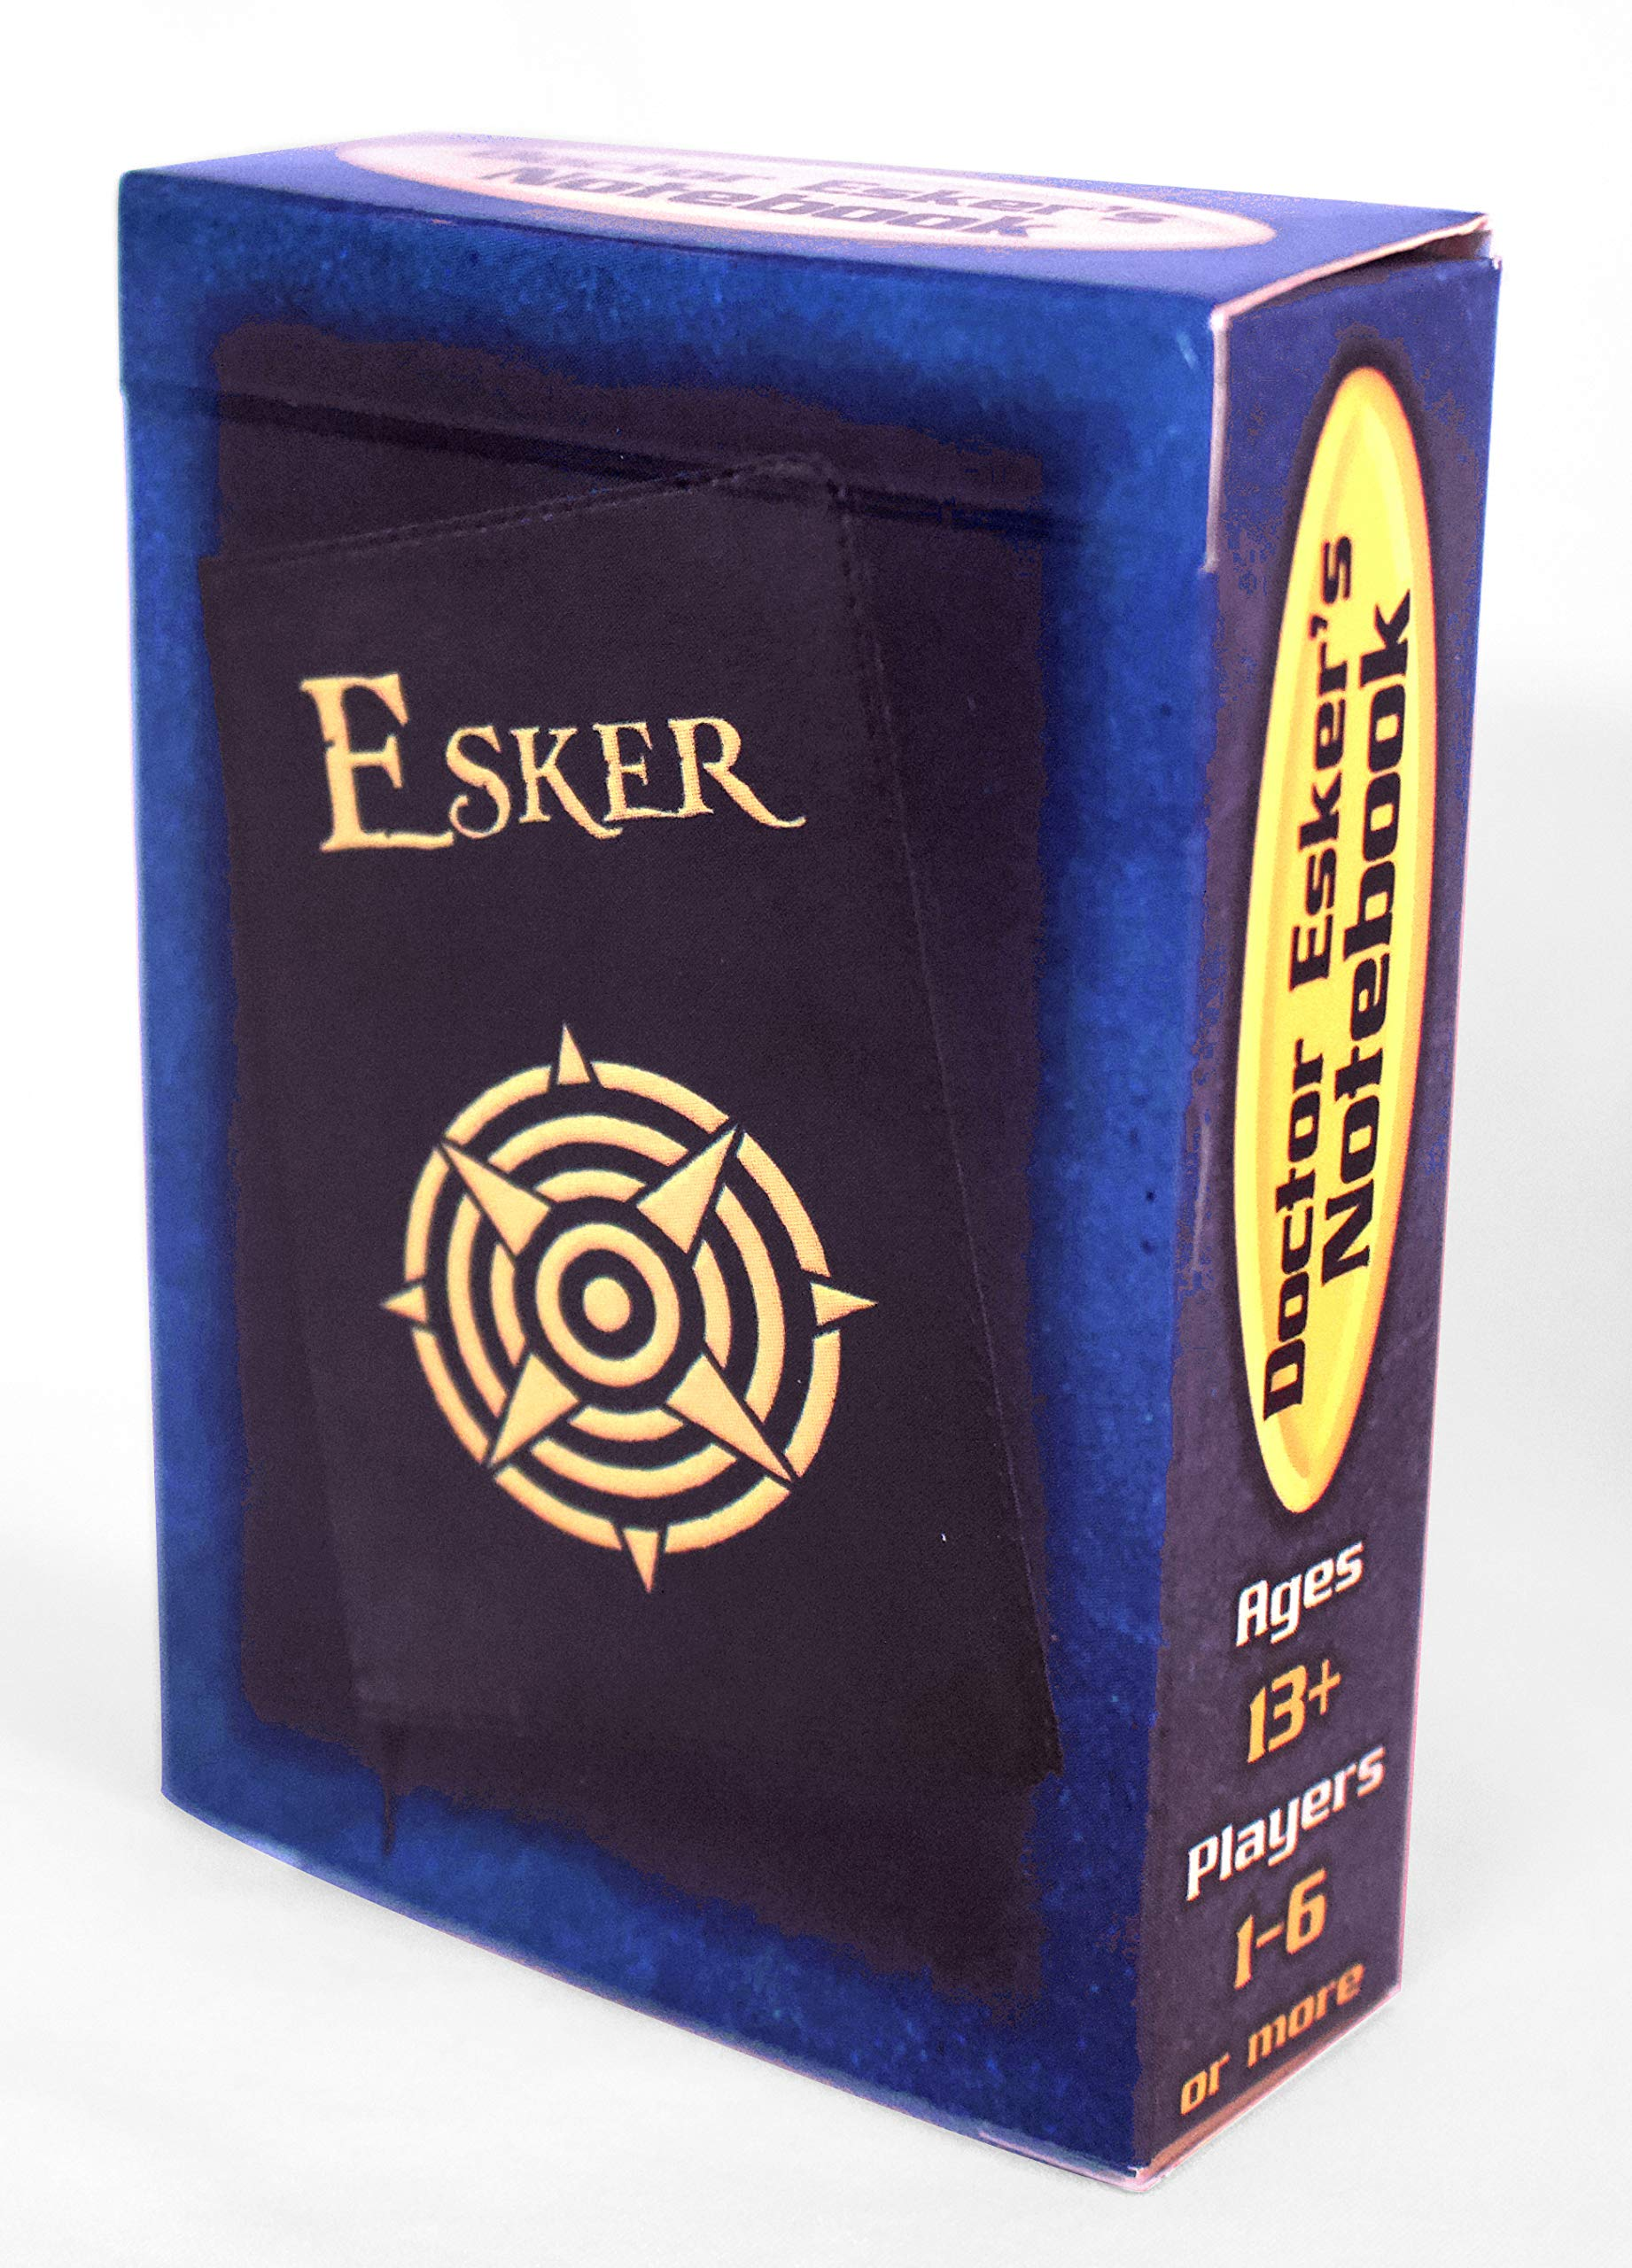 Doctor Esker's Notebook, a Puzzle Card Game in The Style of Escape Rooms